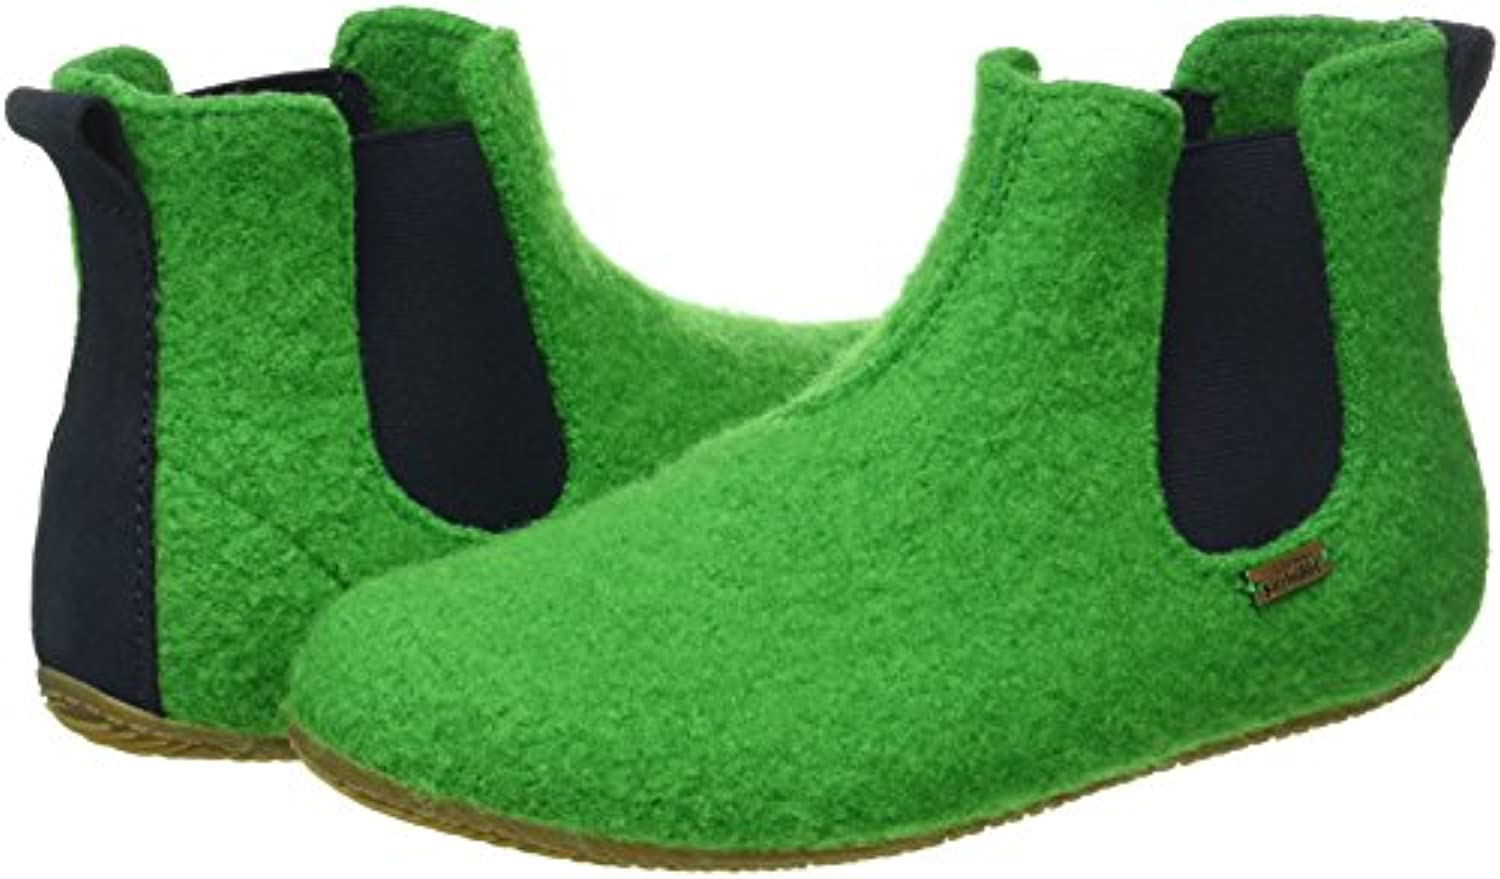 Living Kitzbuhel Boys Chelsea Boot Hi-Top Slippers, Green (Emerald 441), 1 Child UK 33 EU